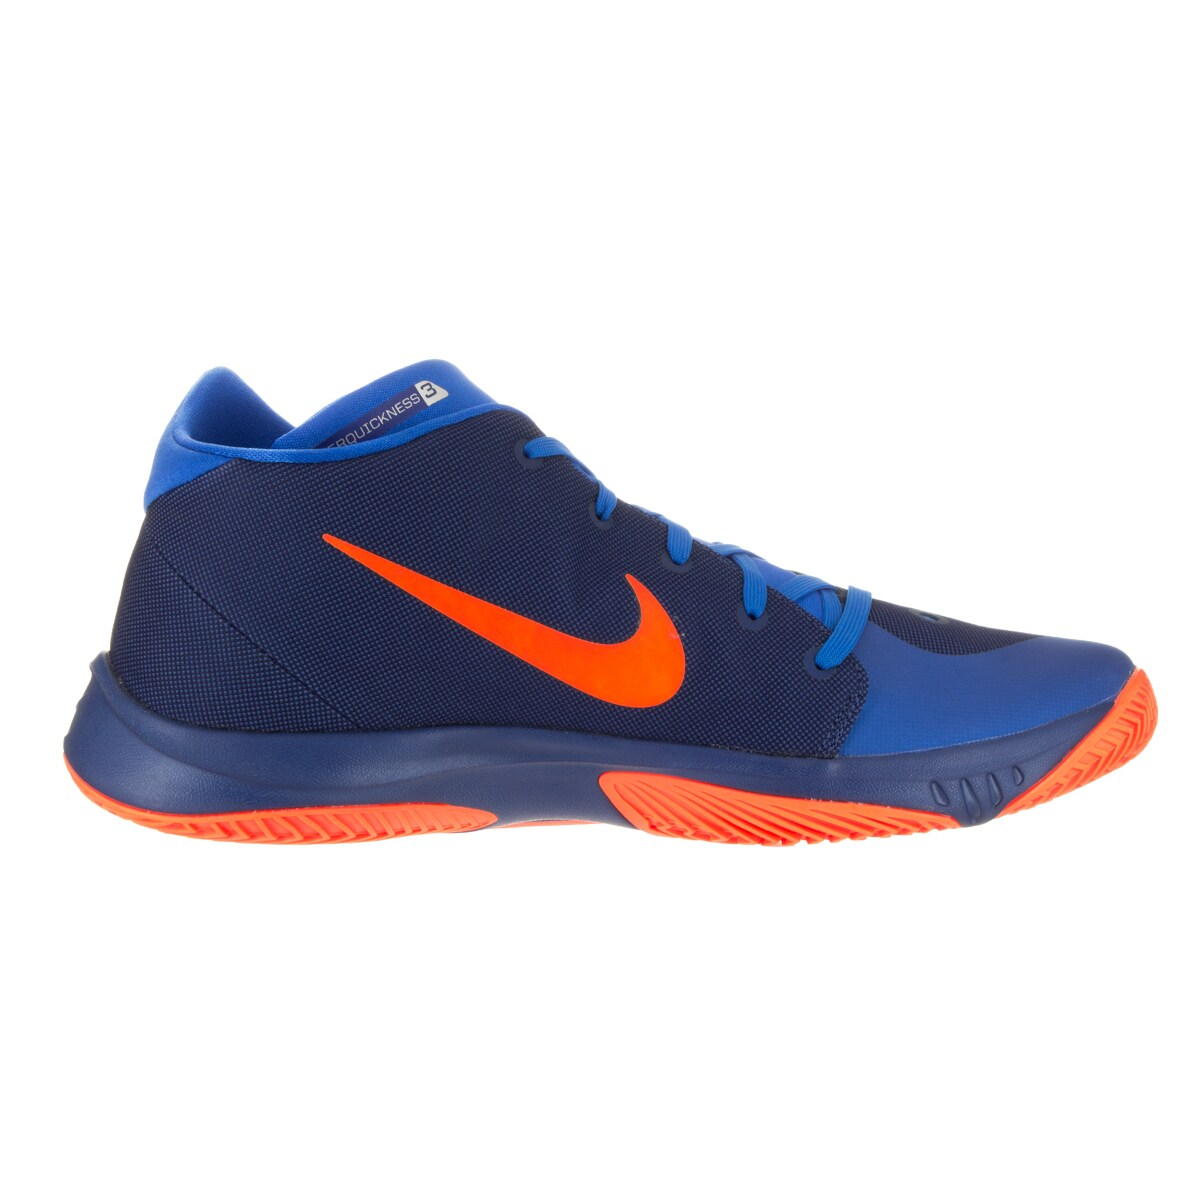 big sale b2efb 58ff1 Shop Nike Men s Zoom Hyperquickness 2015 Insignia Blue Bright Citrus Sr Basketball  Shoe - Free Shipping Today - Overstock - 13393996